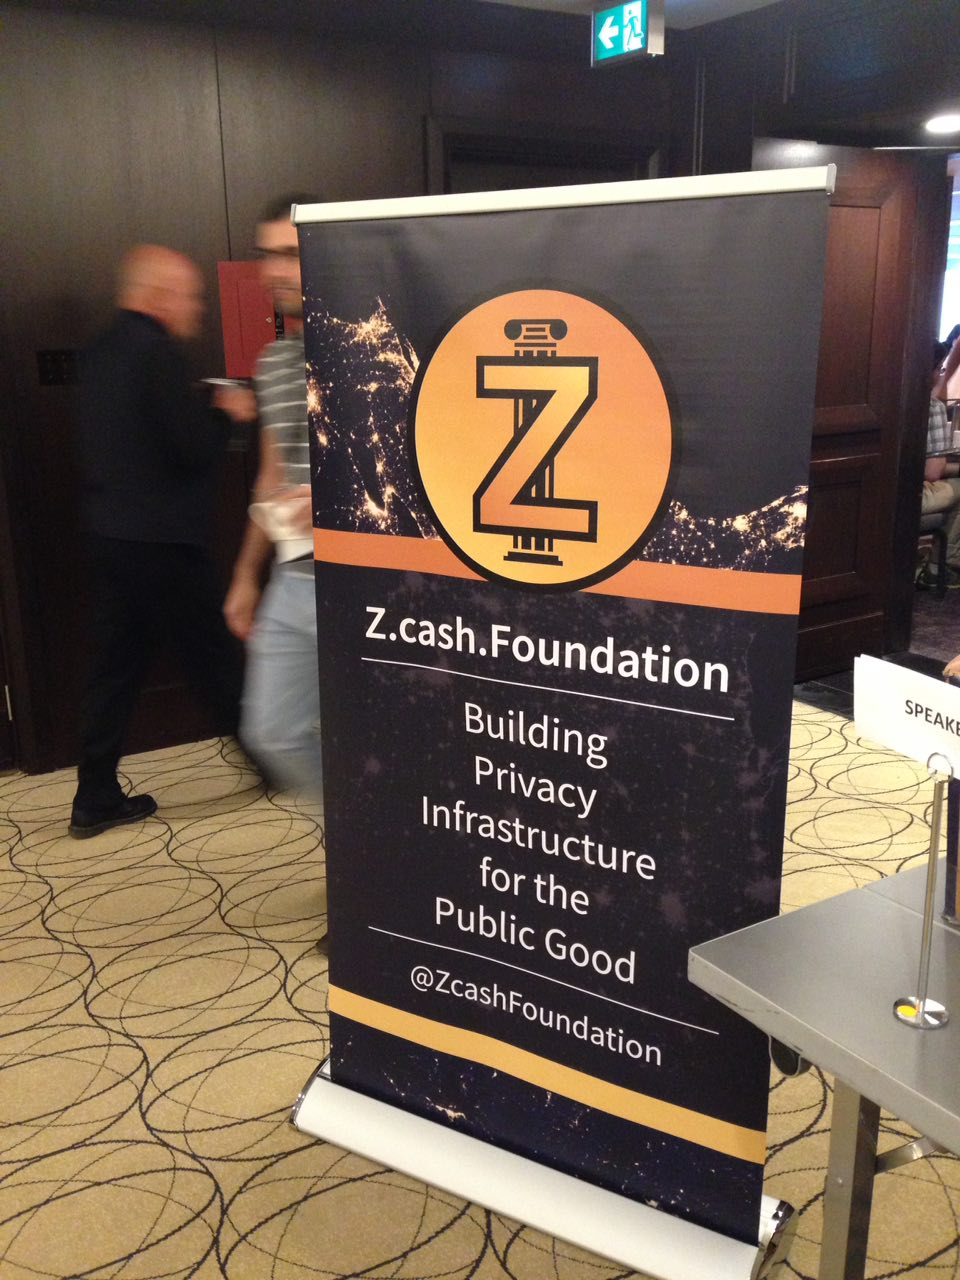 zcash-foundation-criptomonedas-blockchain